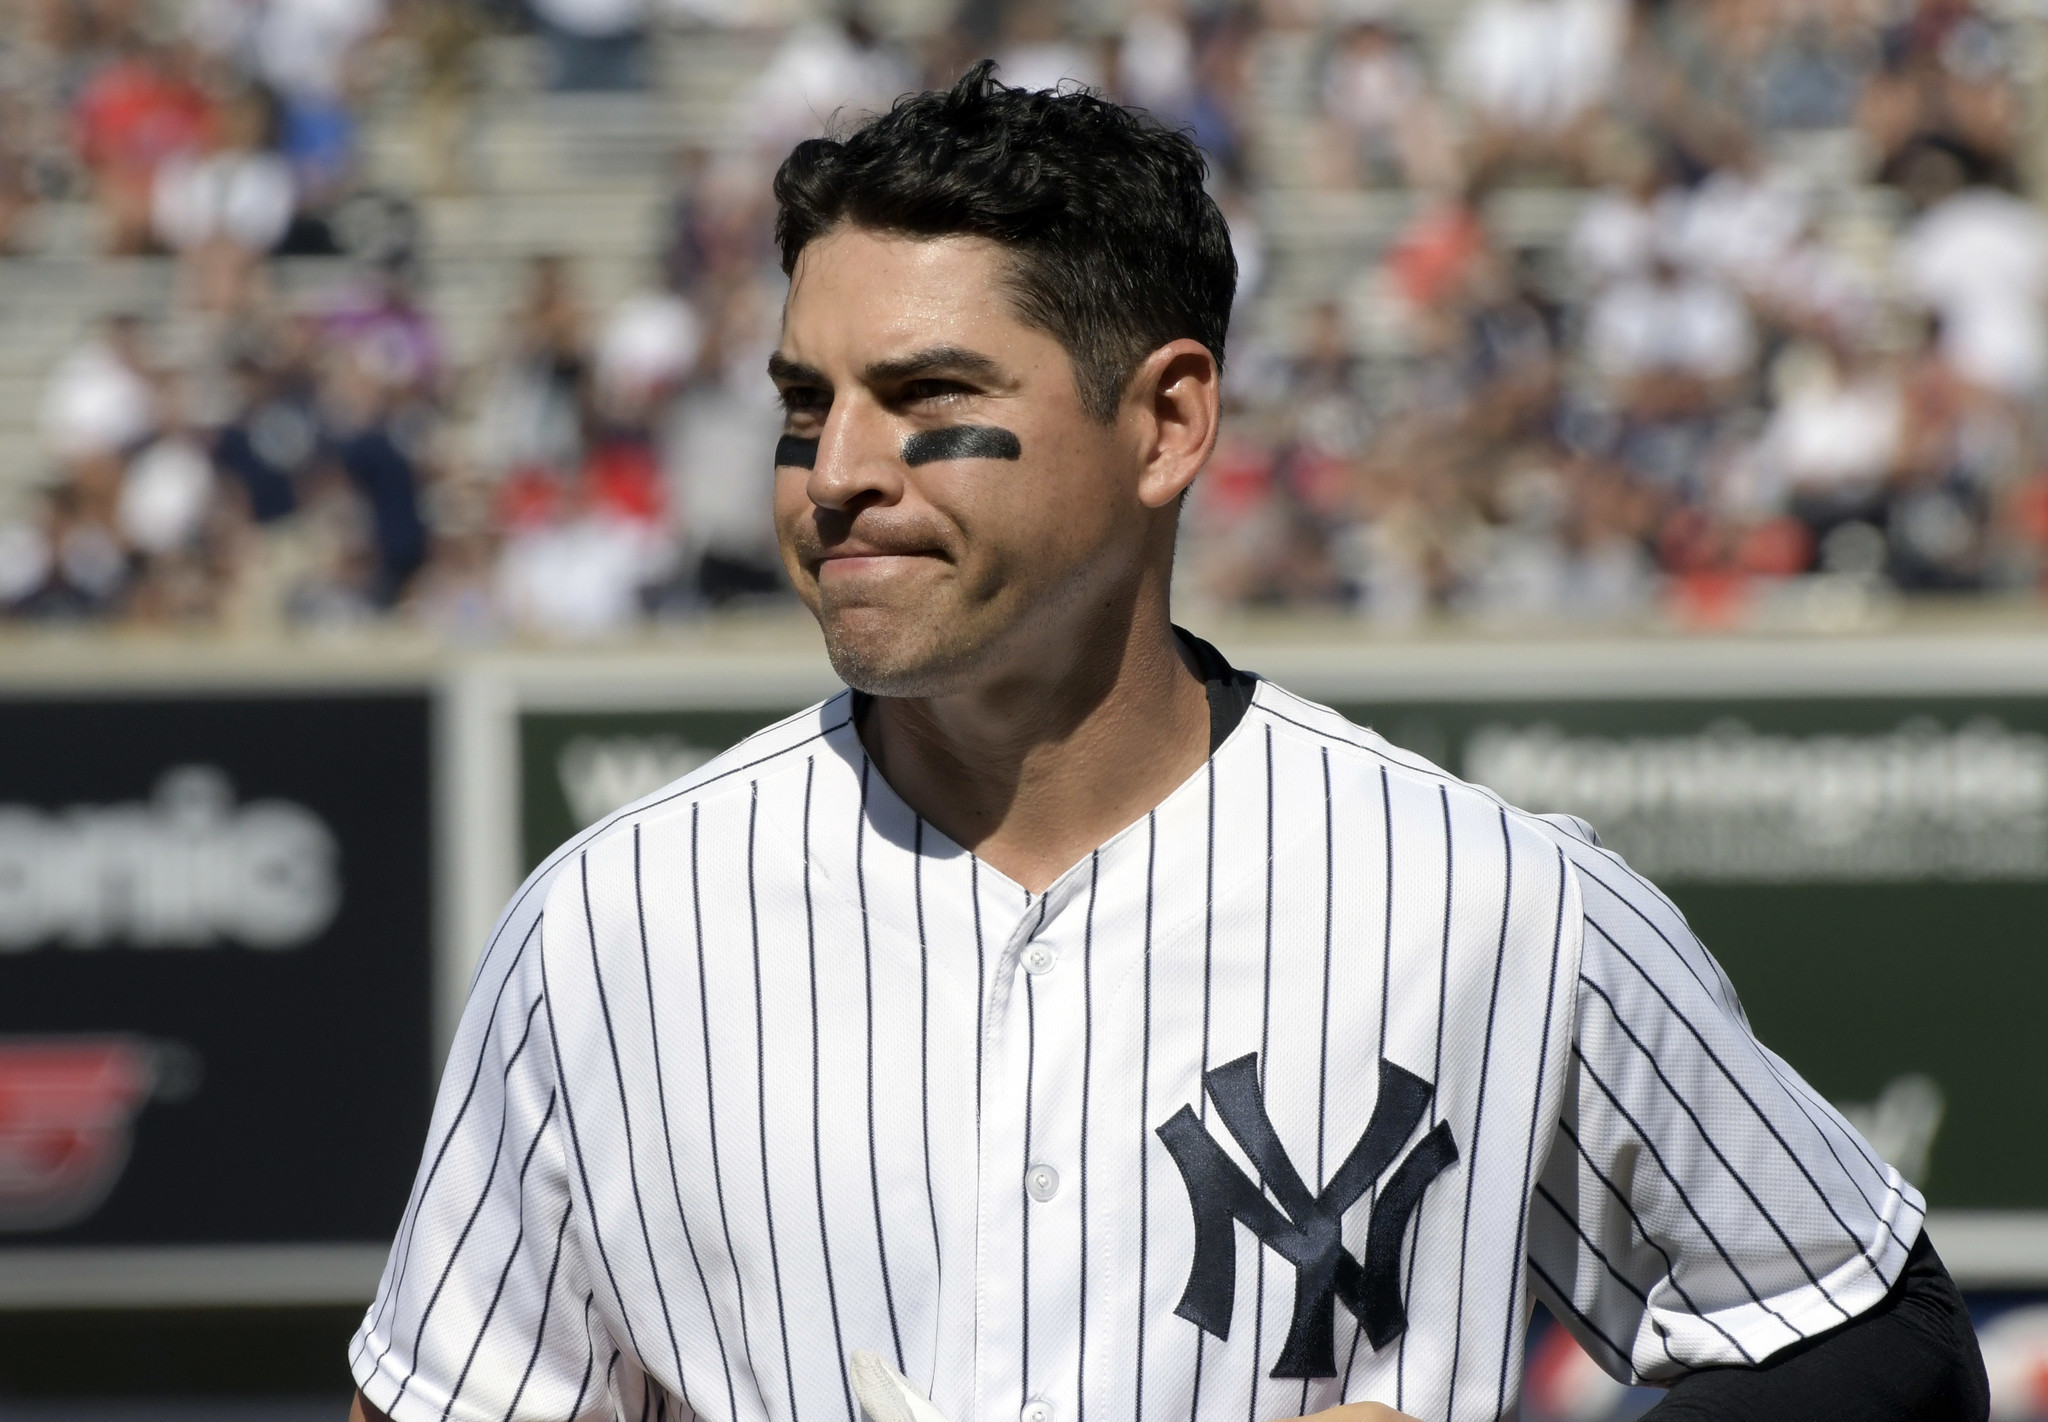 Yankees facing union grievance over Jacoby Ellsbury: report